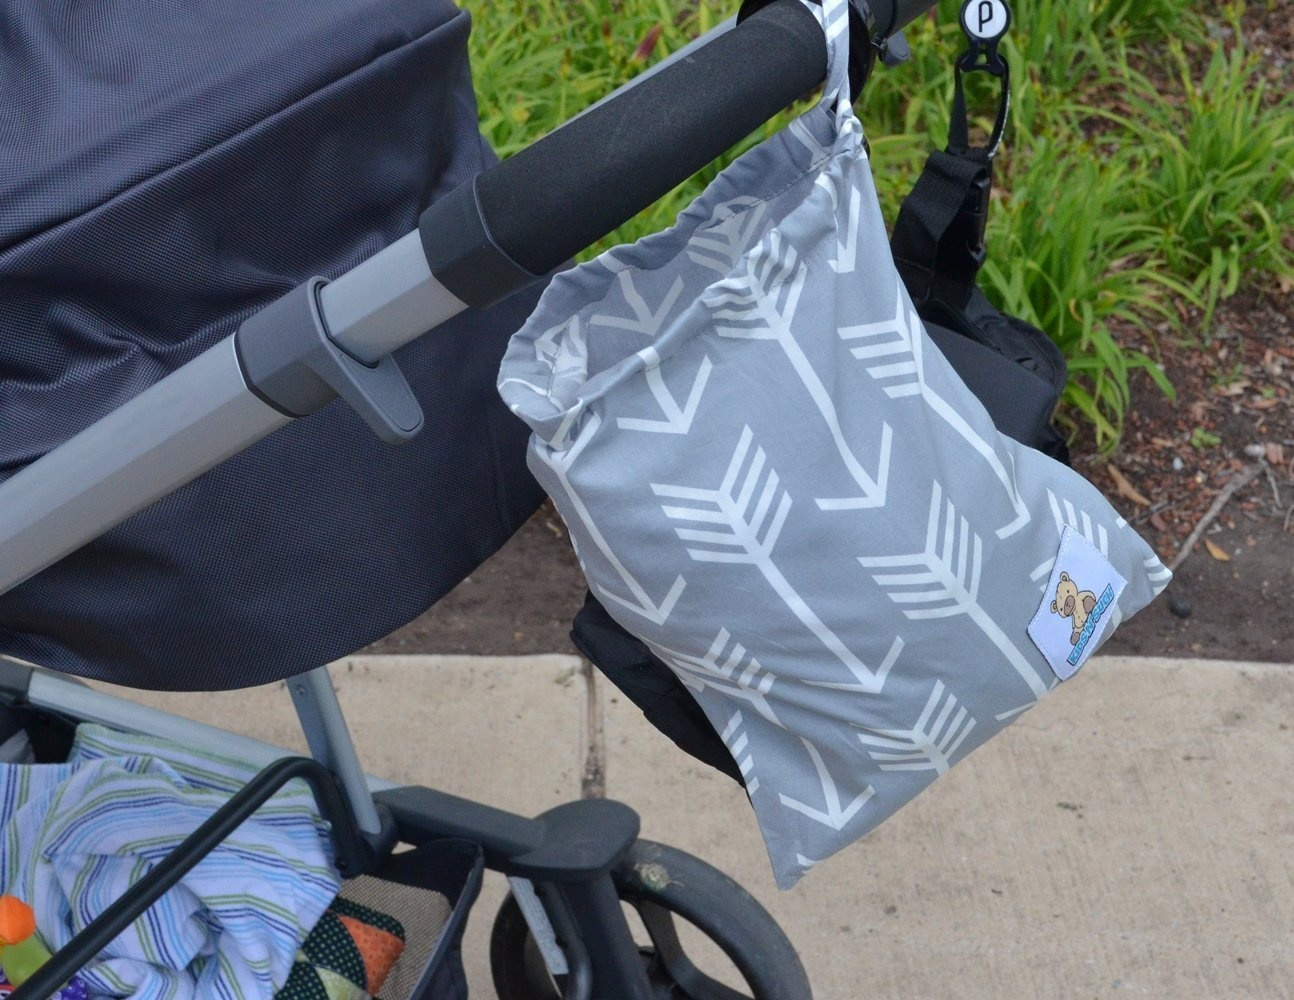 Nursing Cover Baby Baby: Buy Online from Fishpond.com.au